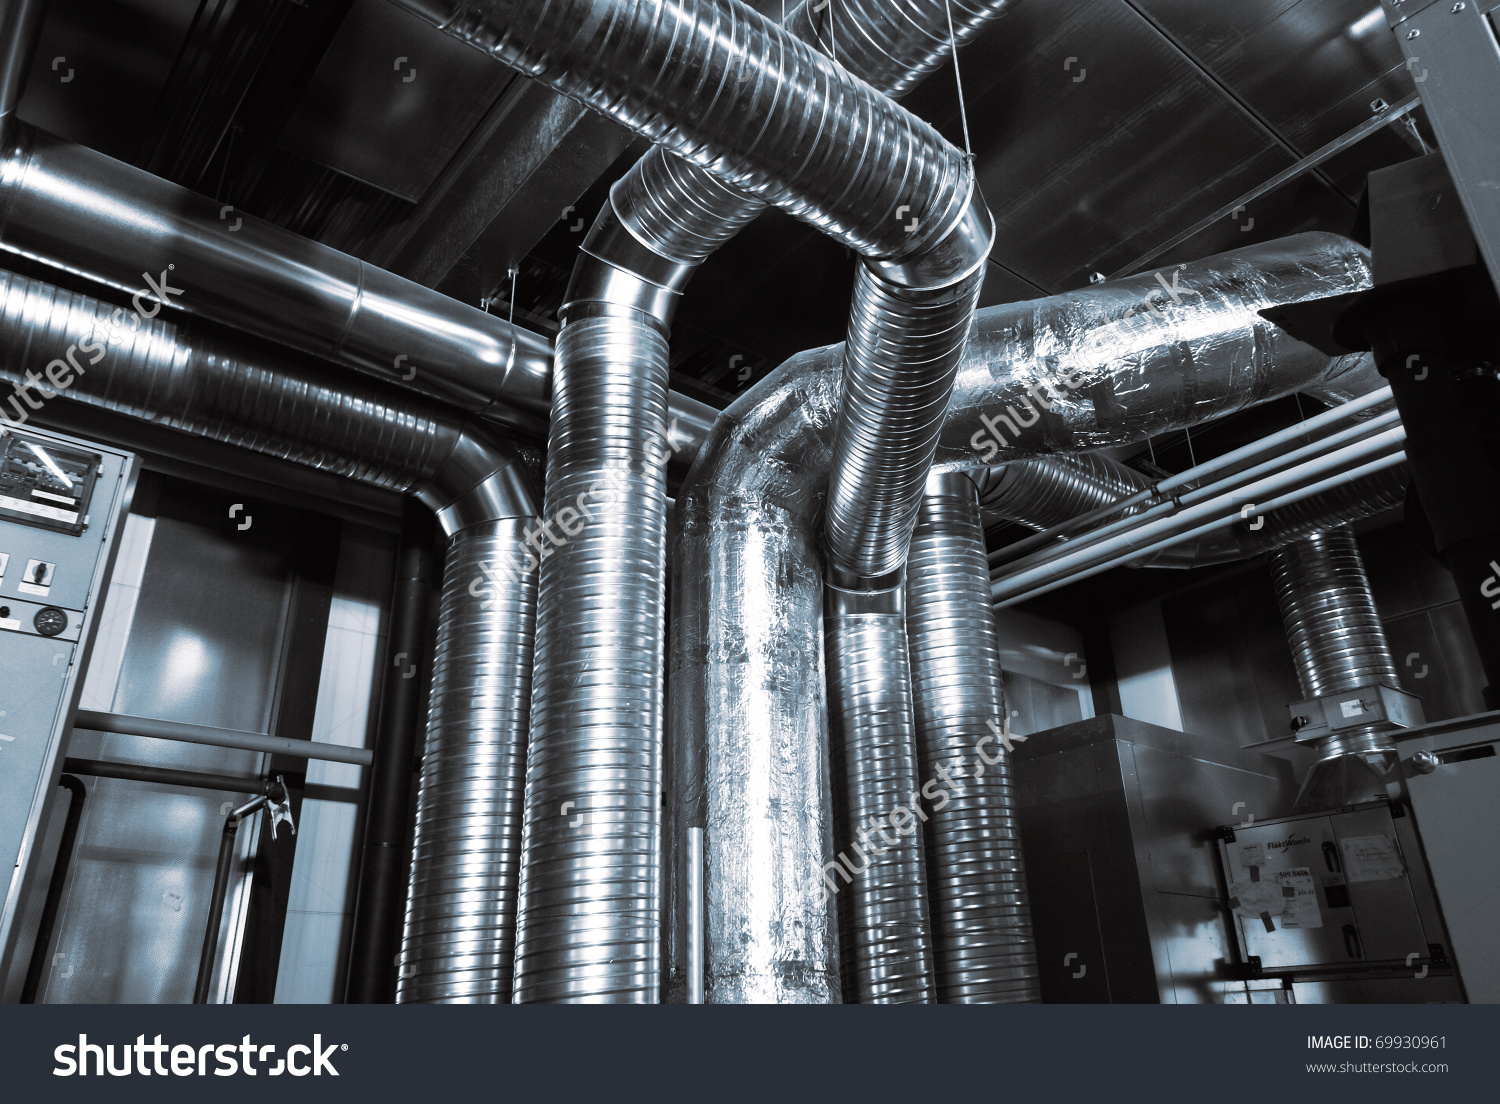 Ventilation Pipes Of An Air Condition Stock Photo 69930961.